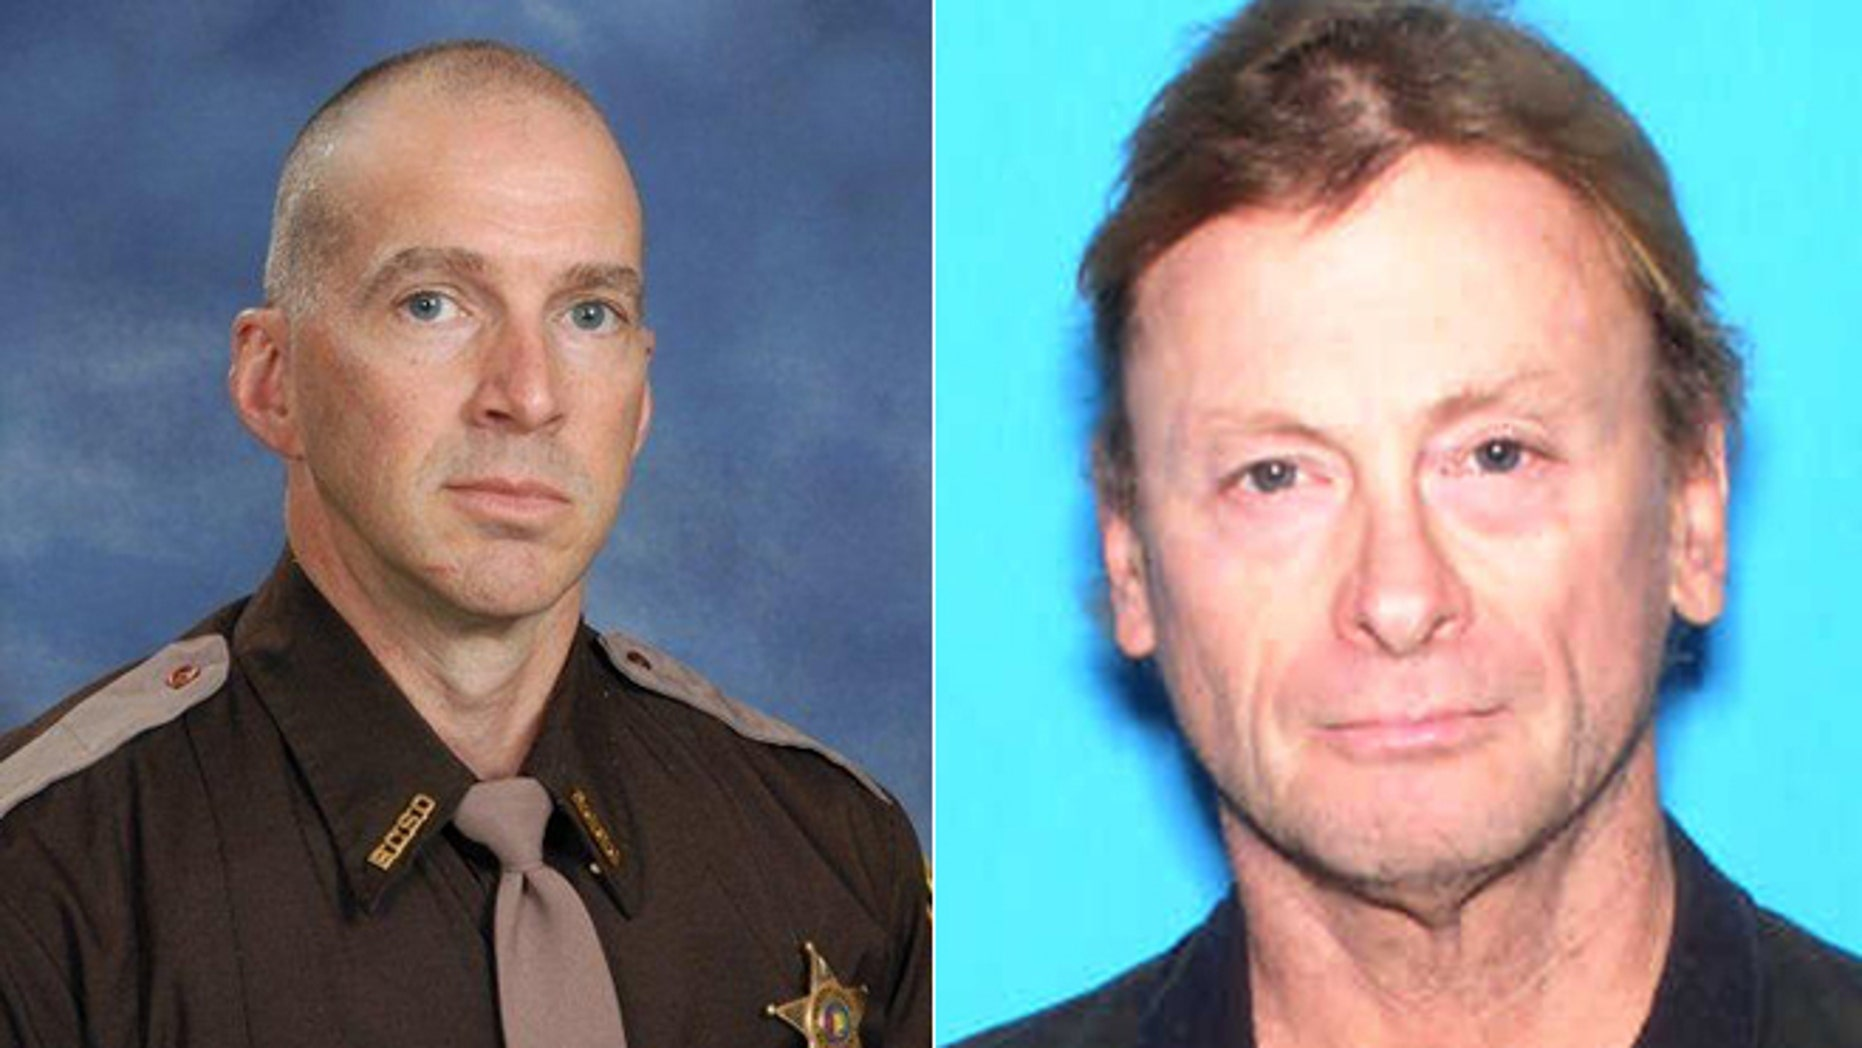 From the left, Sheriff Deputy Scott Ward was fatally shot during a shootout with Michael Jansen, authorities say.